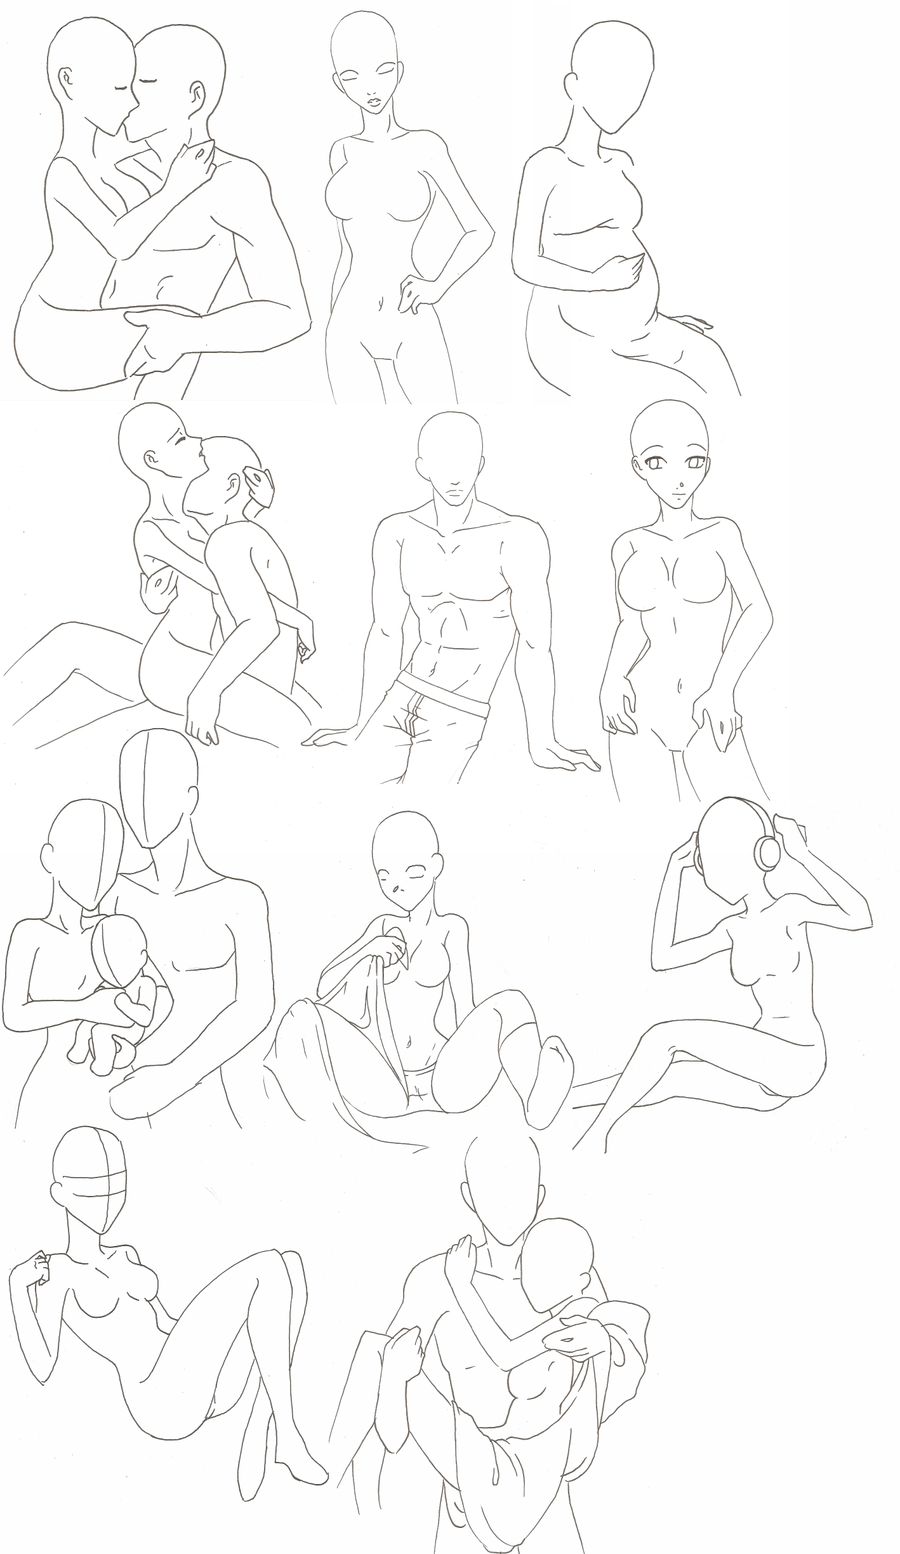 Pin by Sara Integurl on Love poses art (With images